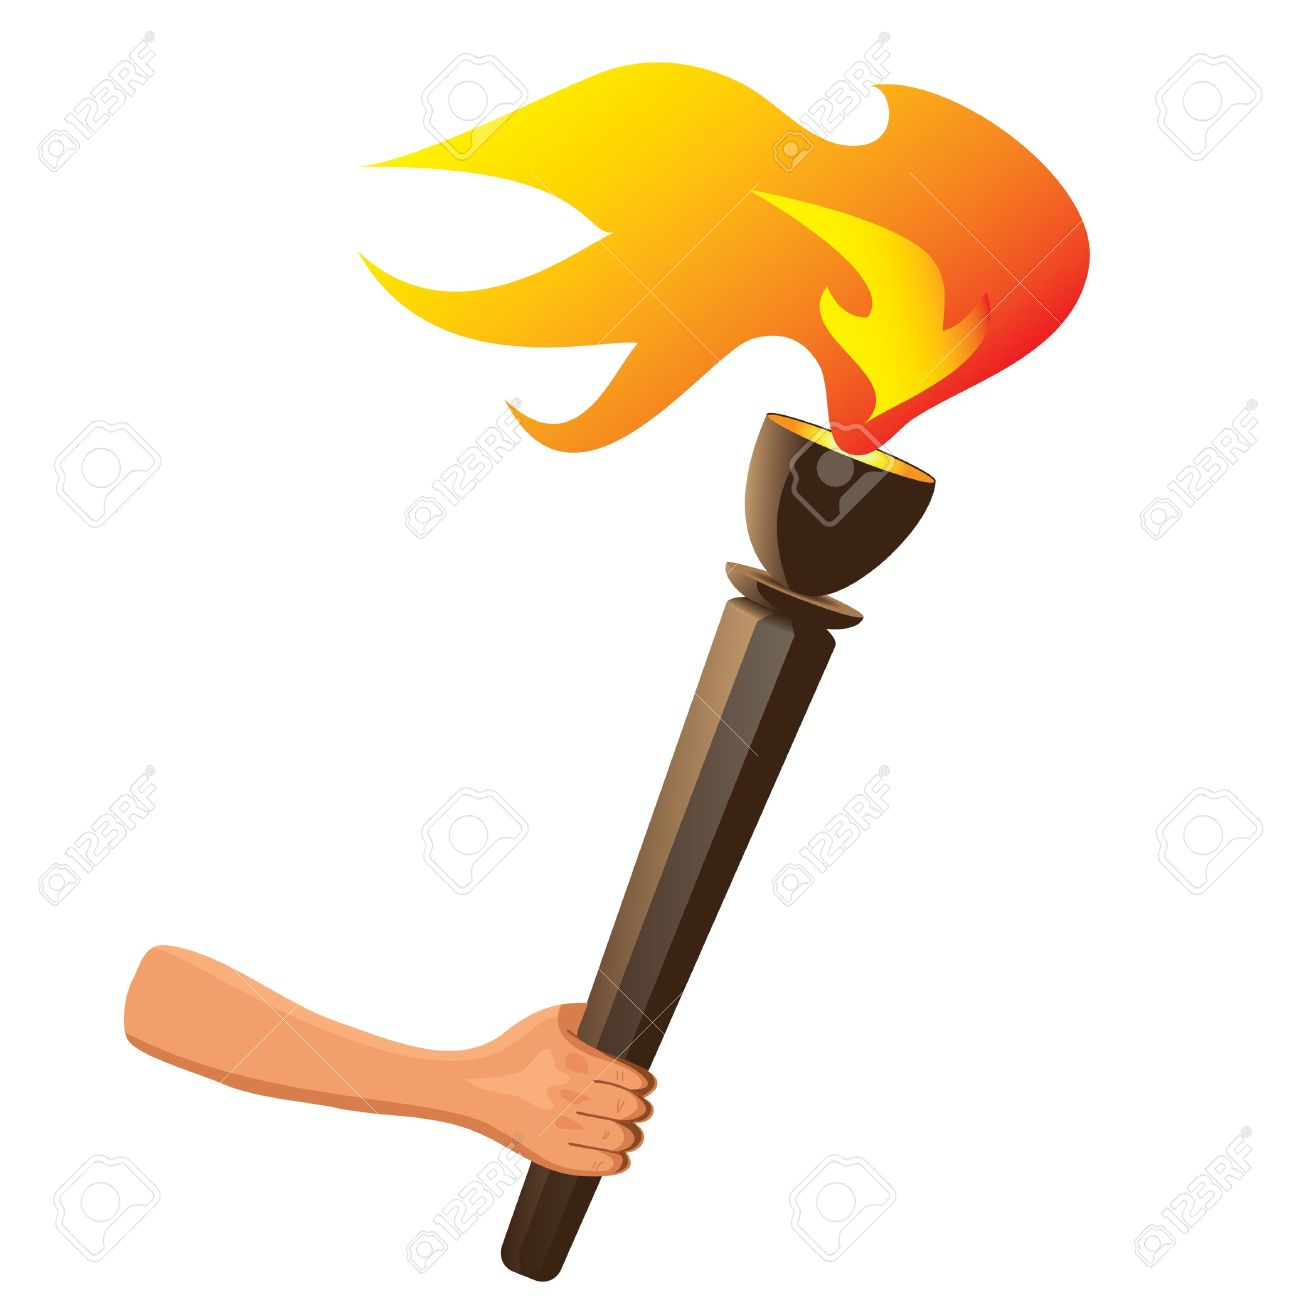 Flaming torch clipart jpg transparent download Flaming torch clipart - ClipartFest jpg transparent download